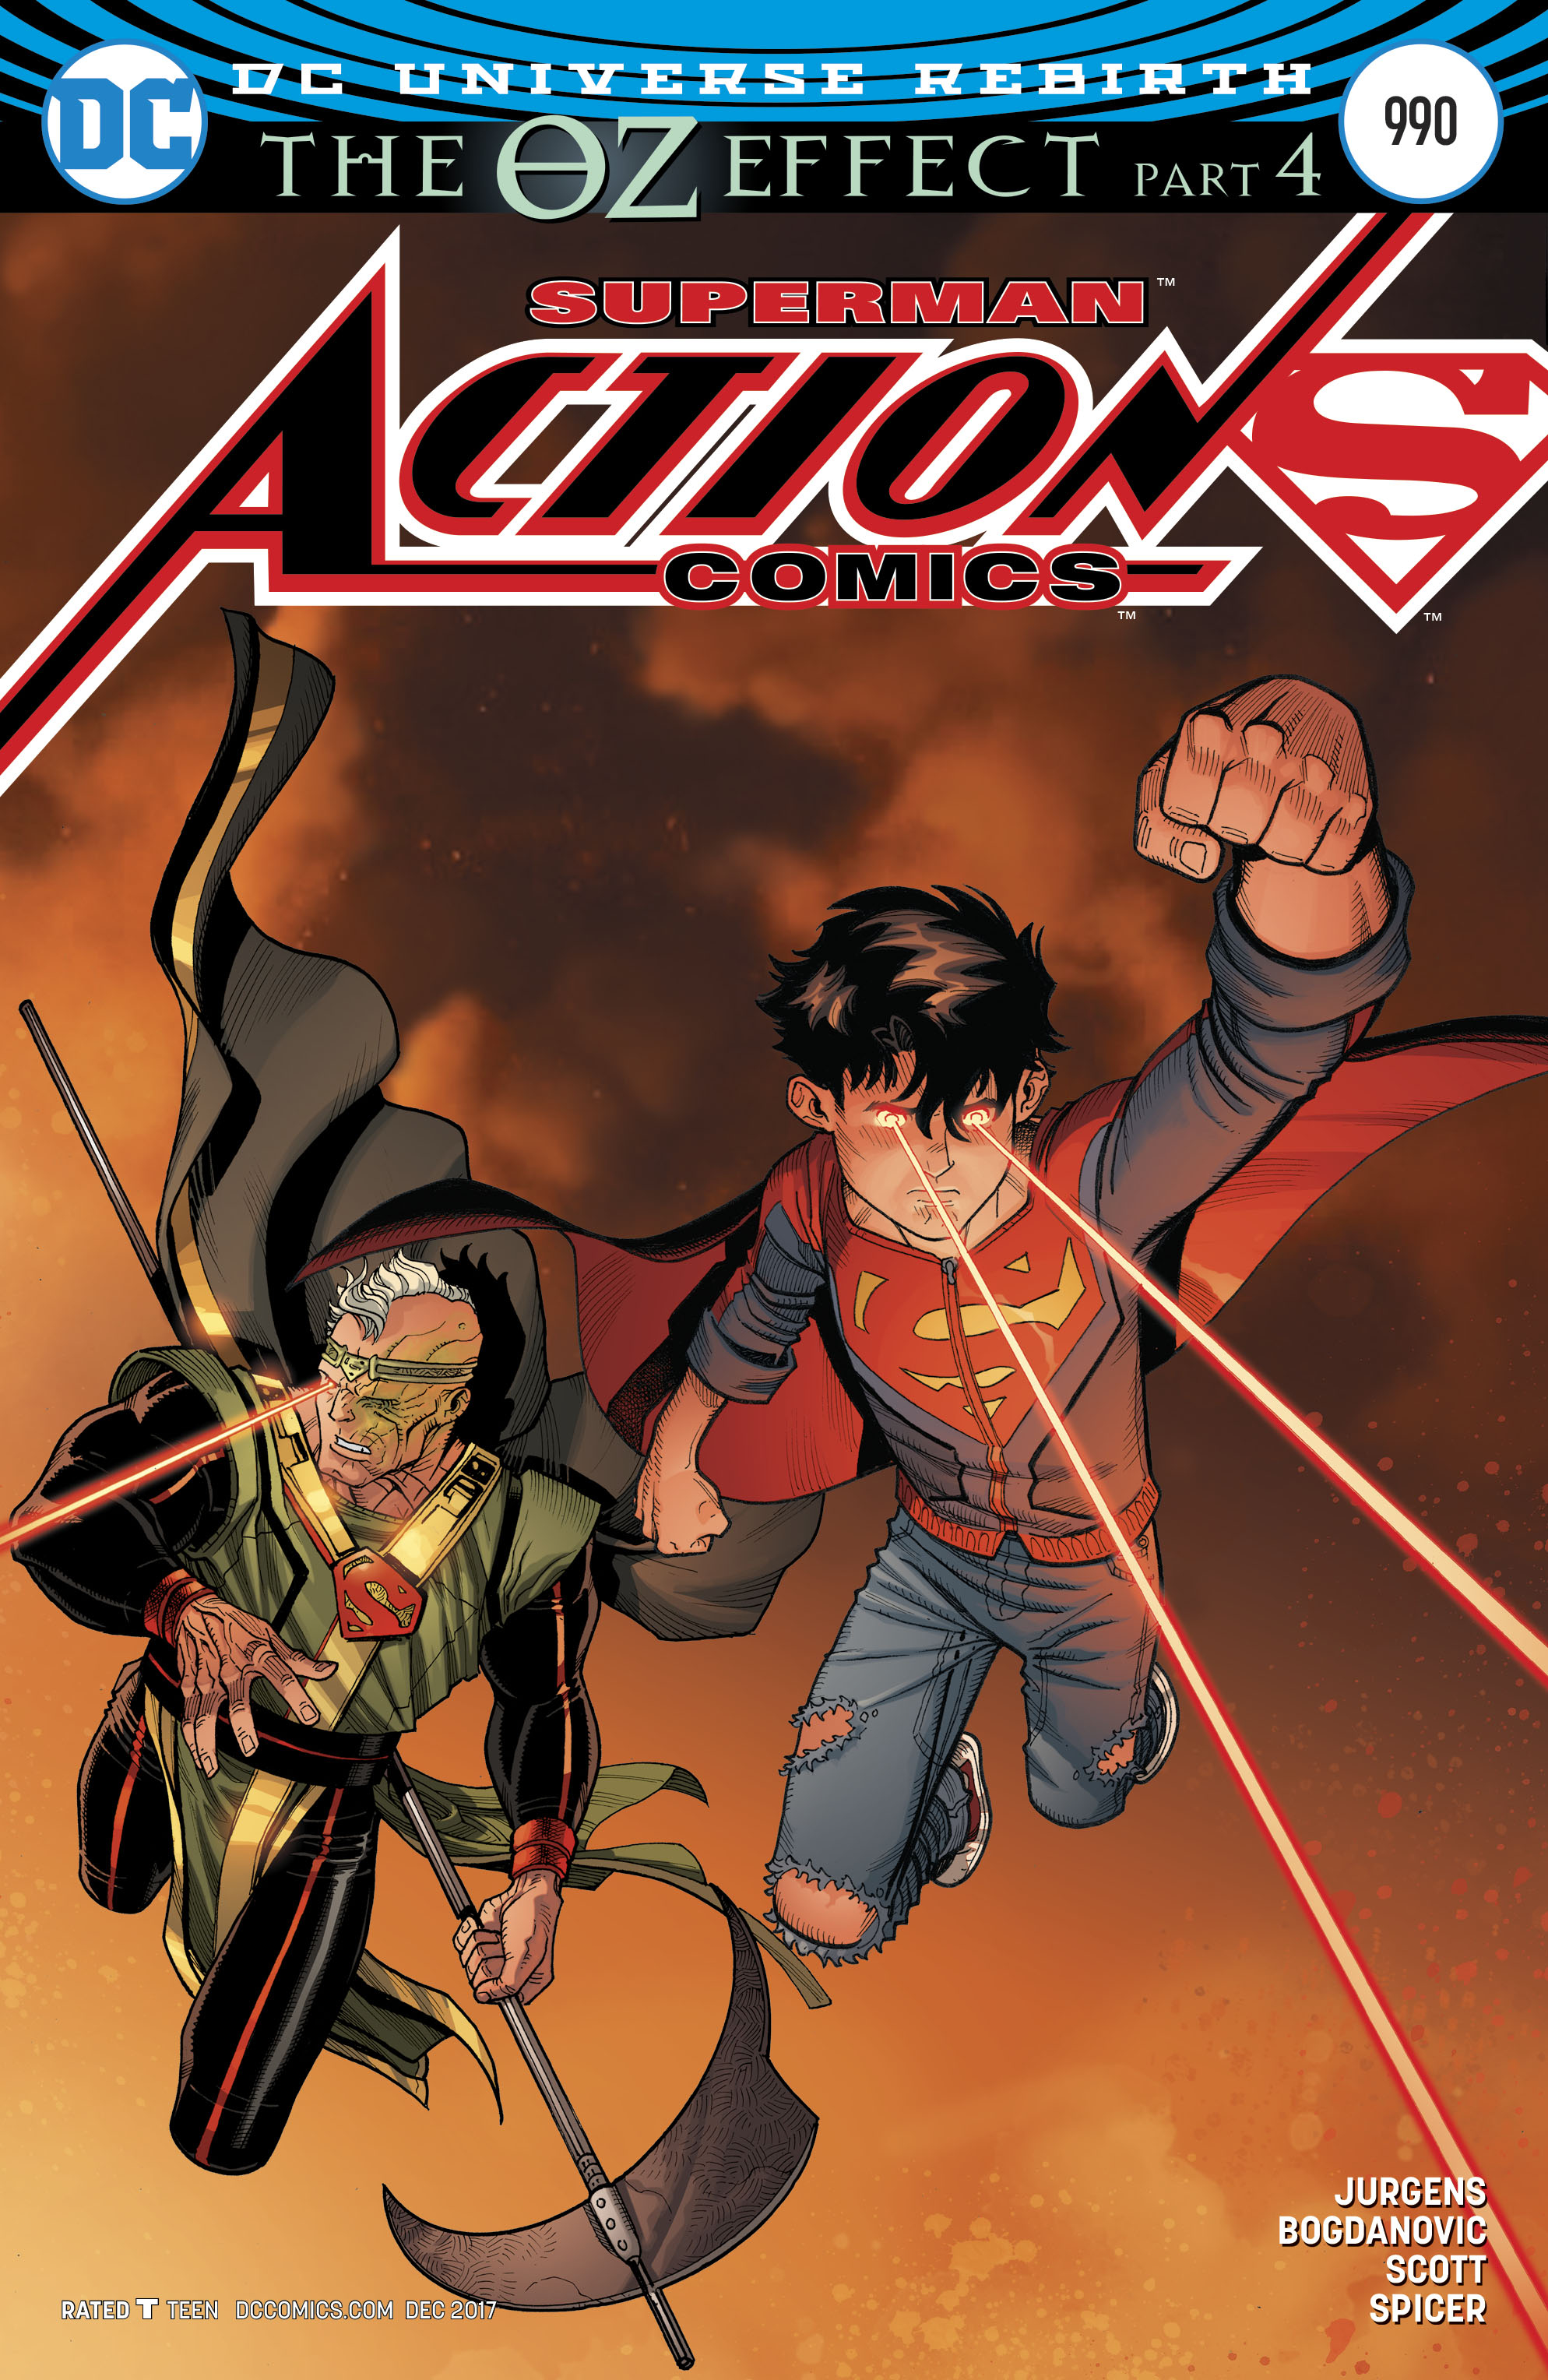 ACTION COMICS #990 (OZ EFFECT)